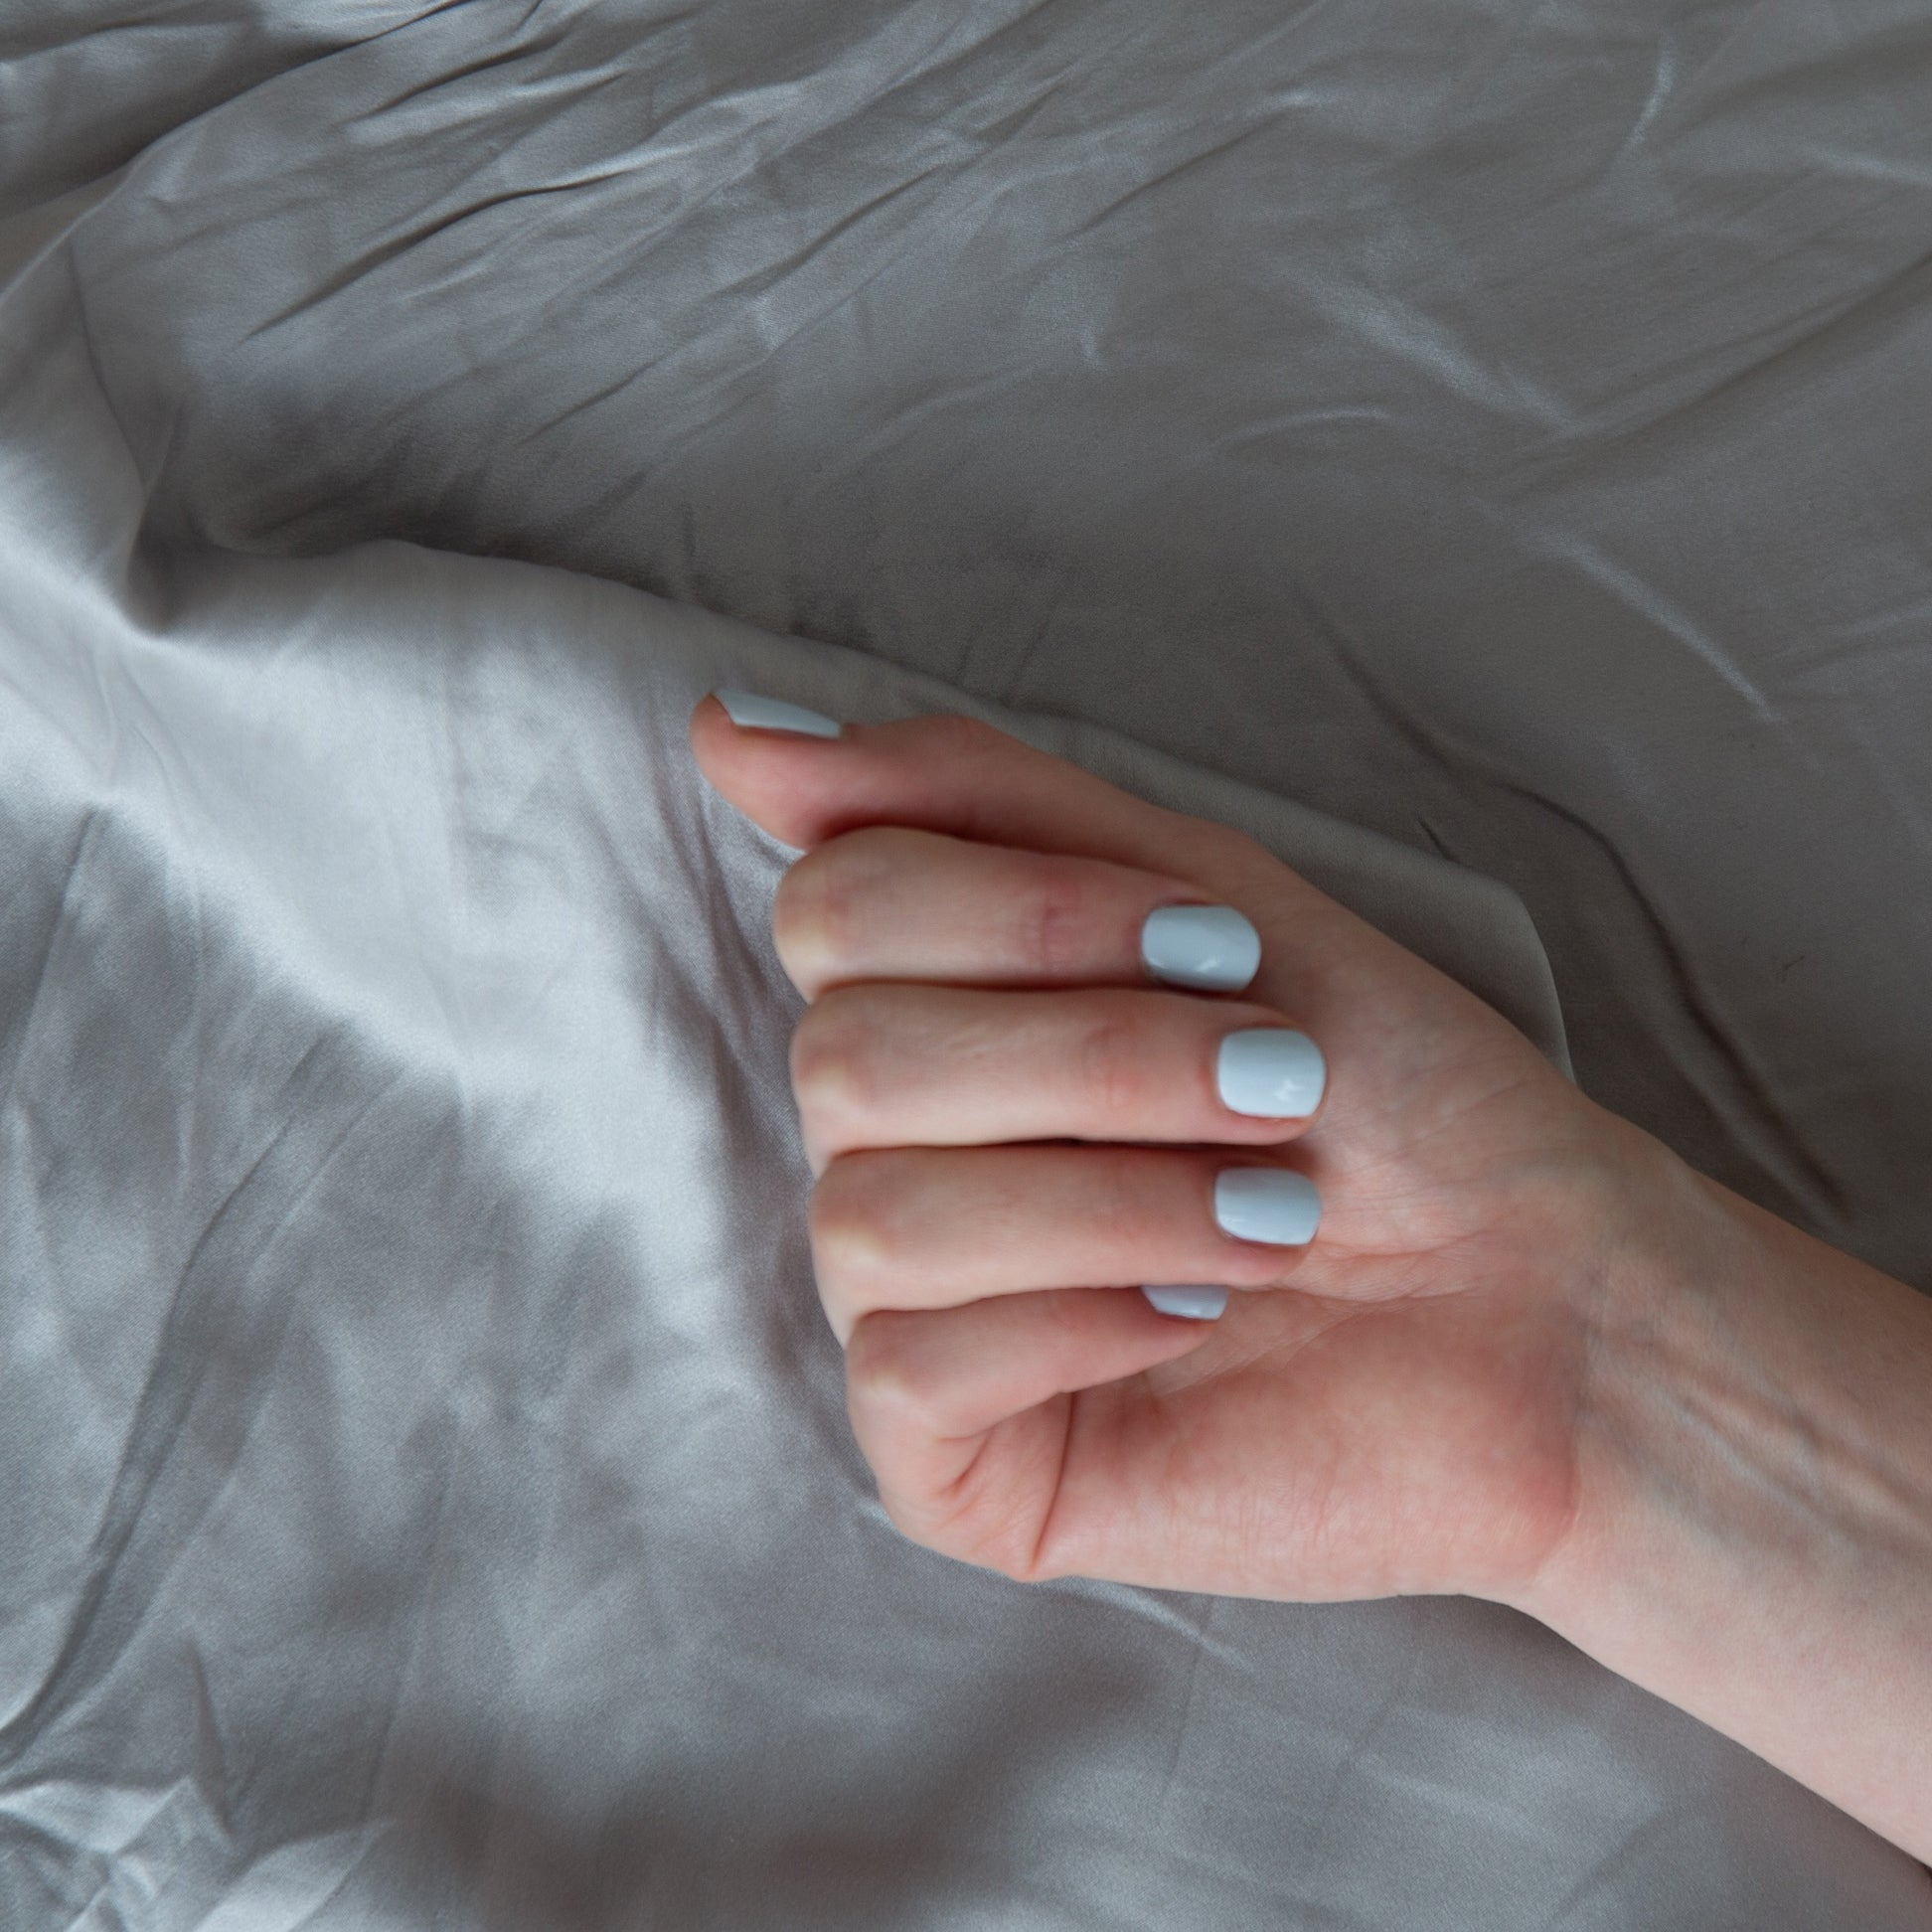 A female clutching her hand against a grey backdrop, wearing Pale Glacier, a light baby blue colour of nail polish